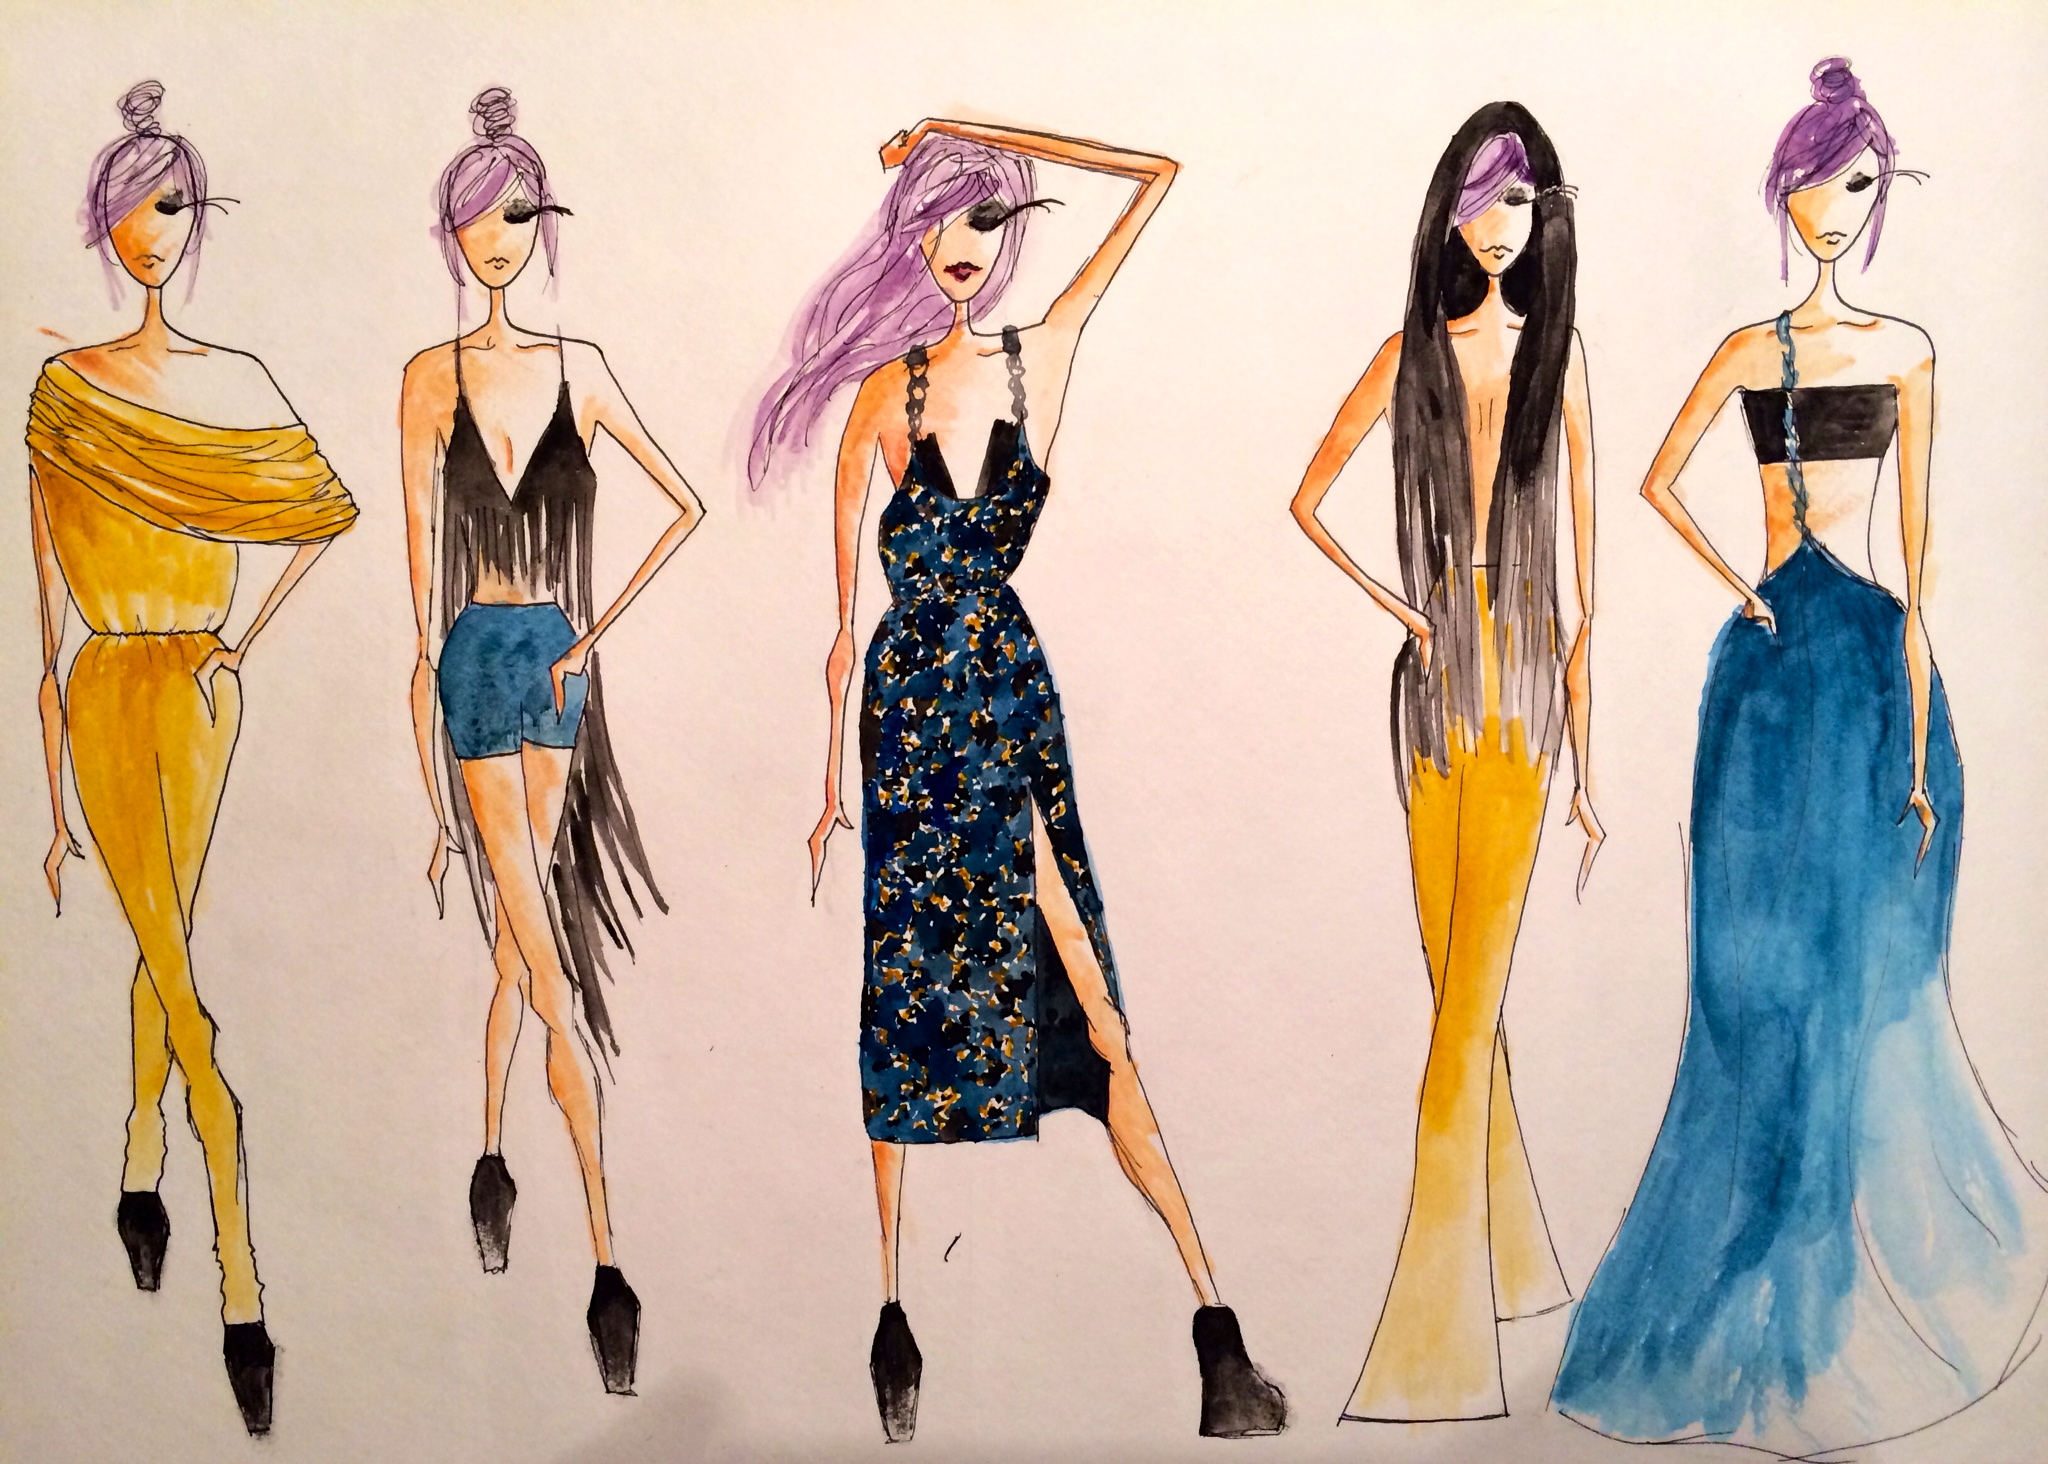 Clothing Designer Sketches and clothing design